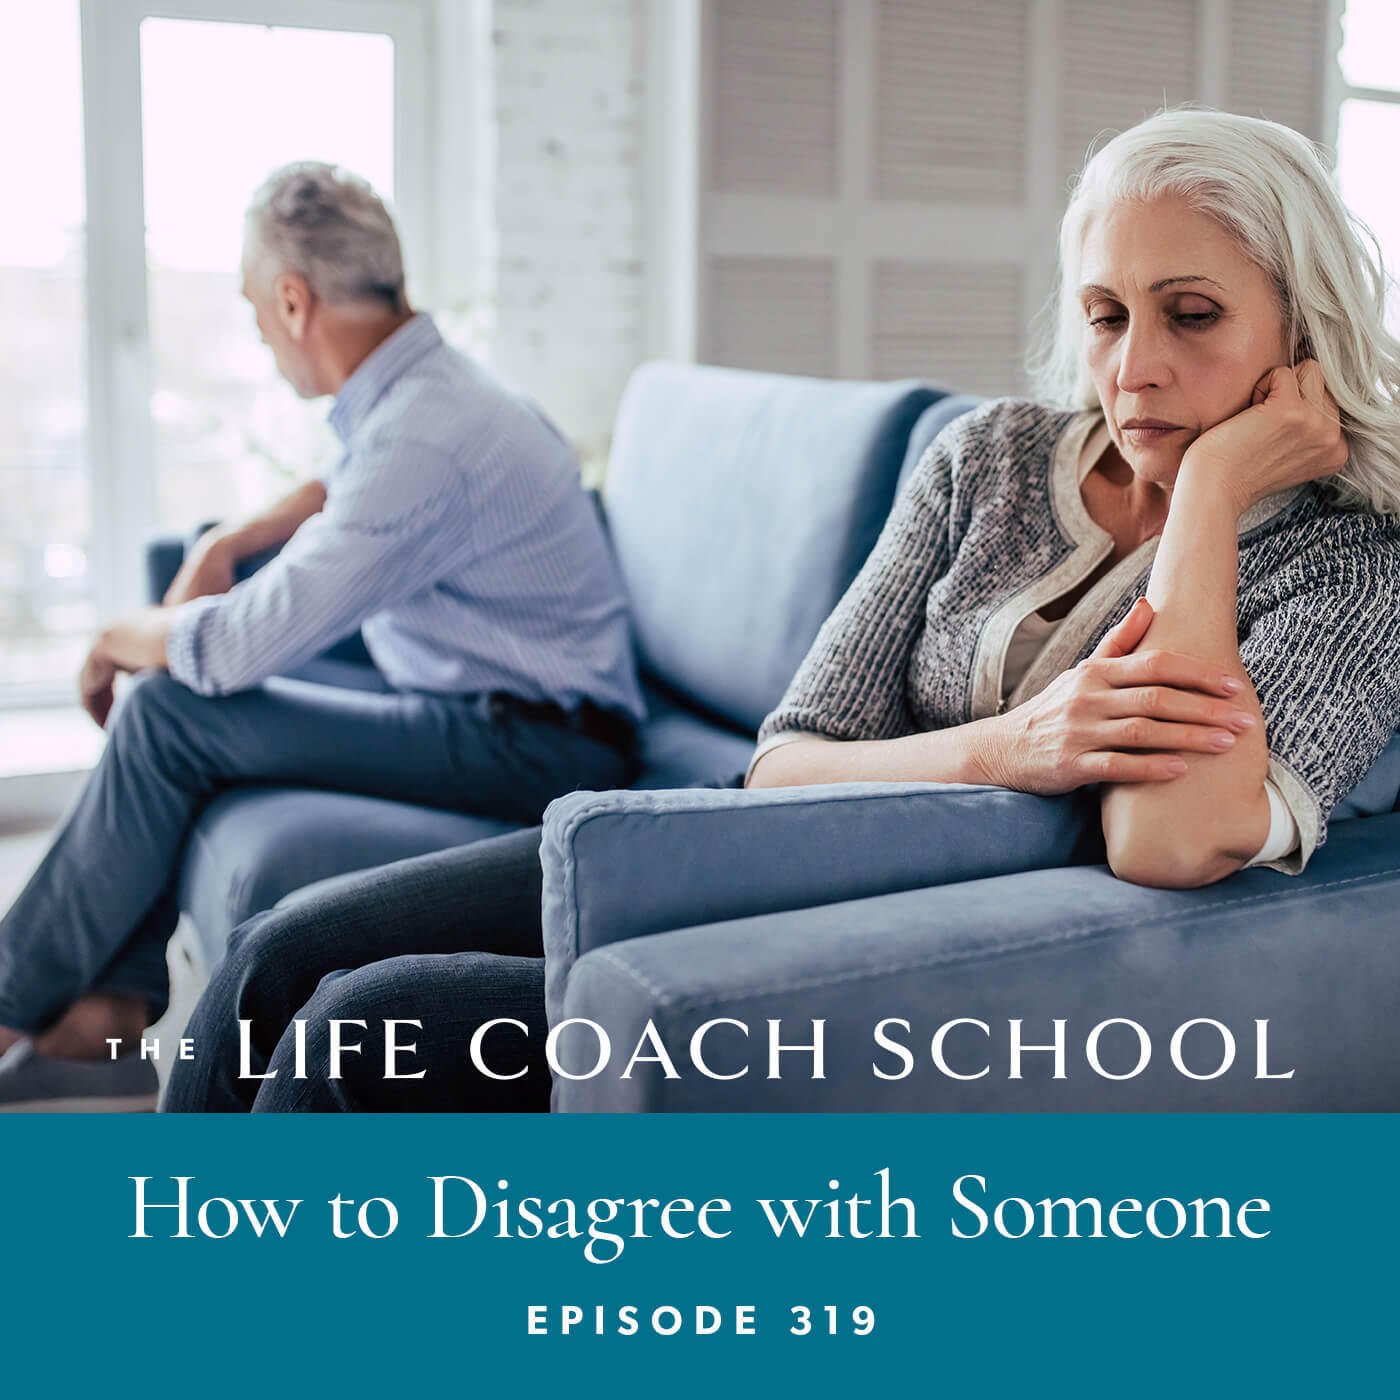 The Life Coach School Podcast with Brooke Castillo | Episode 319 | How to Disagree with Someone